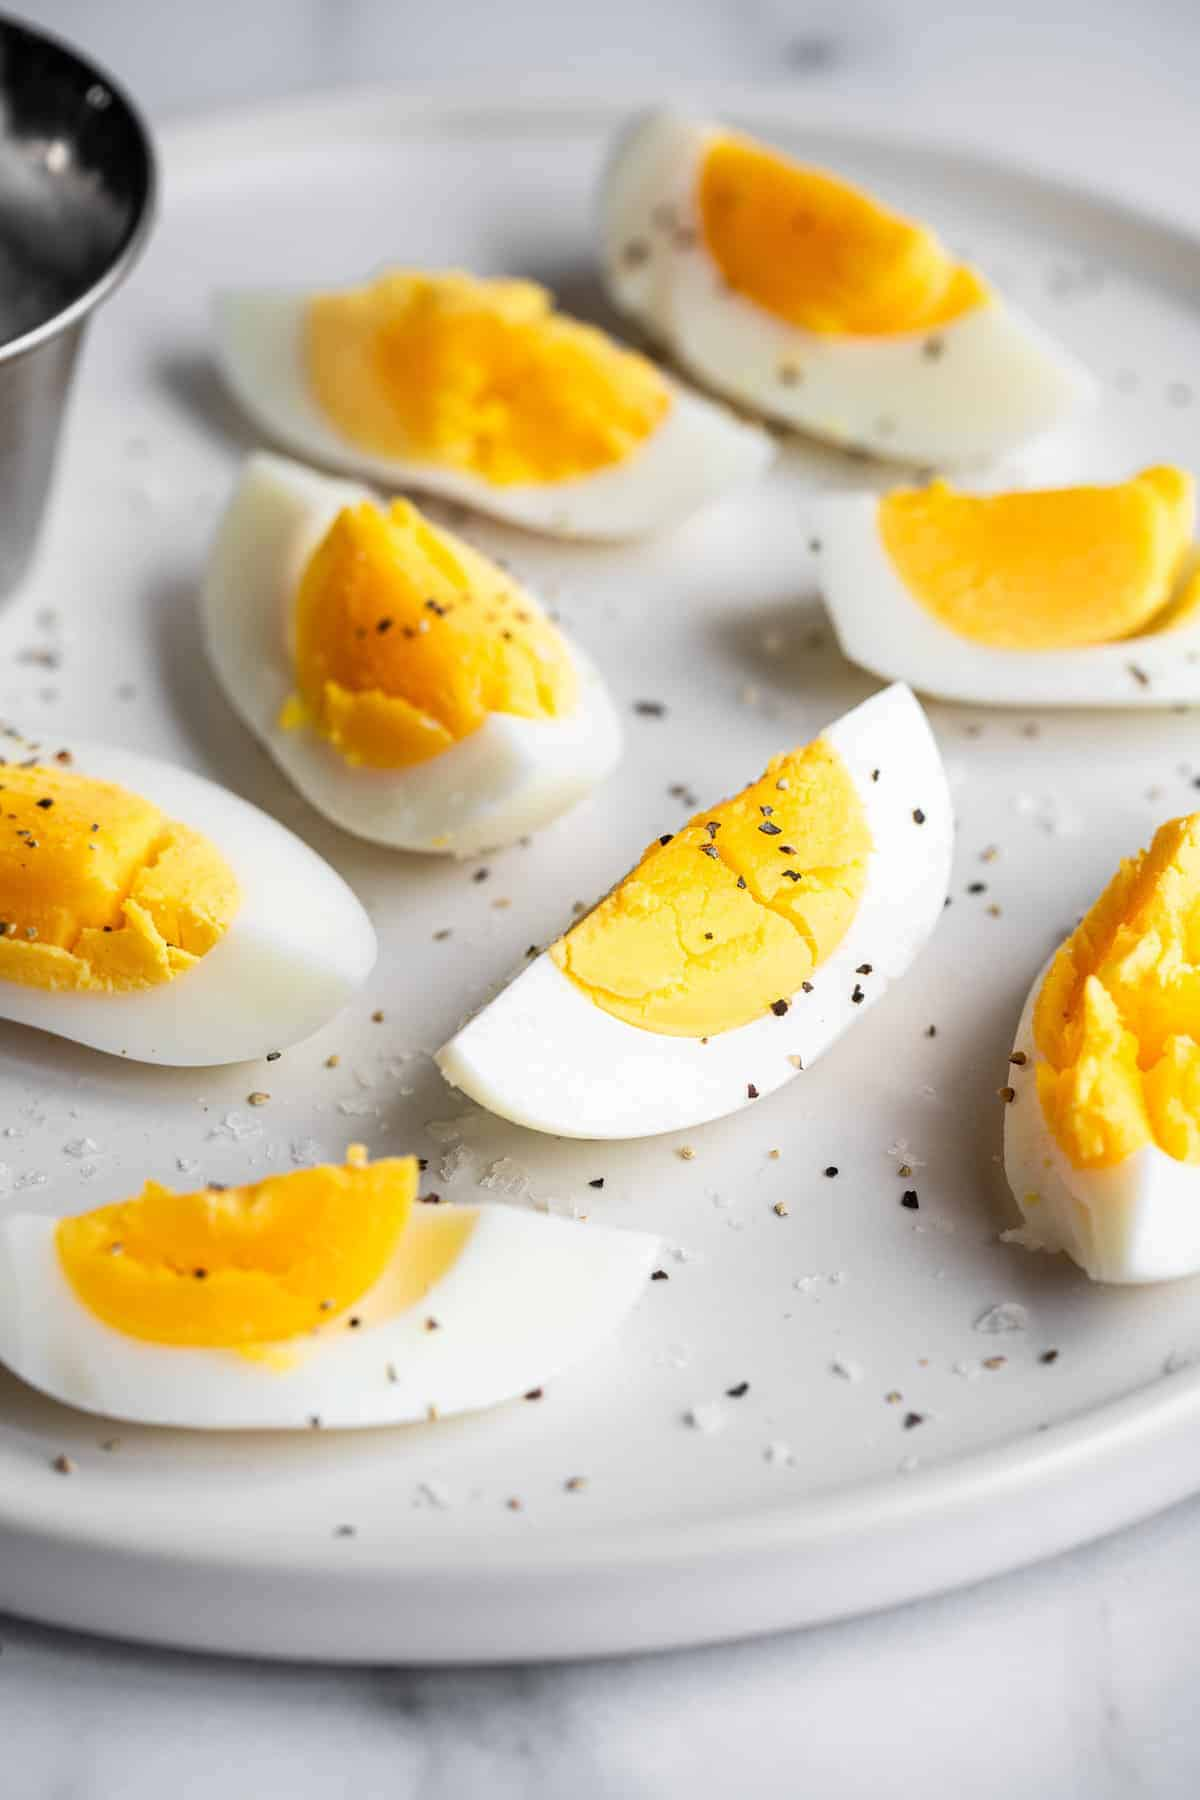 sliced air fryer hard boiled eggs with pepper on them